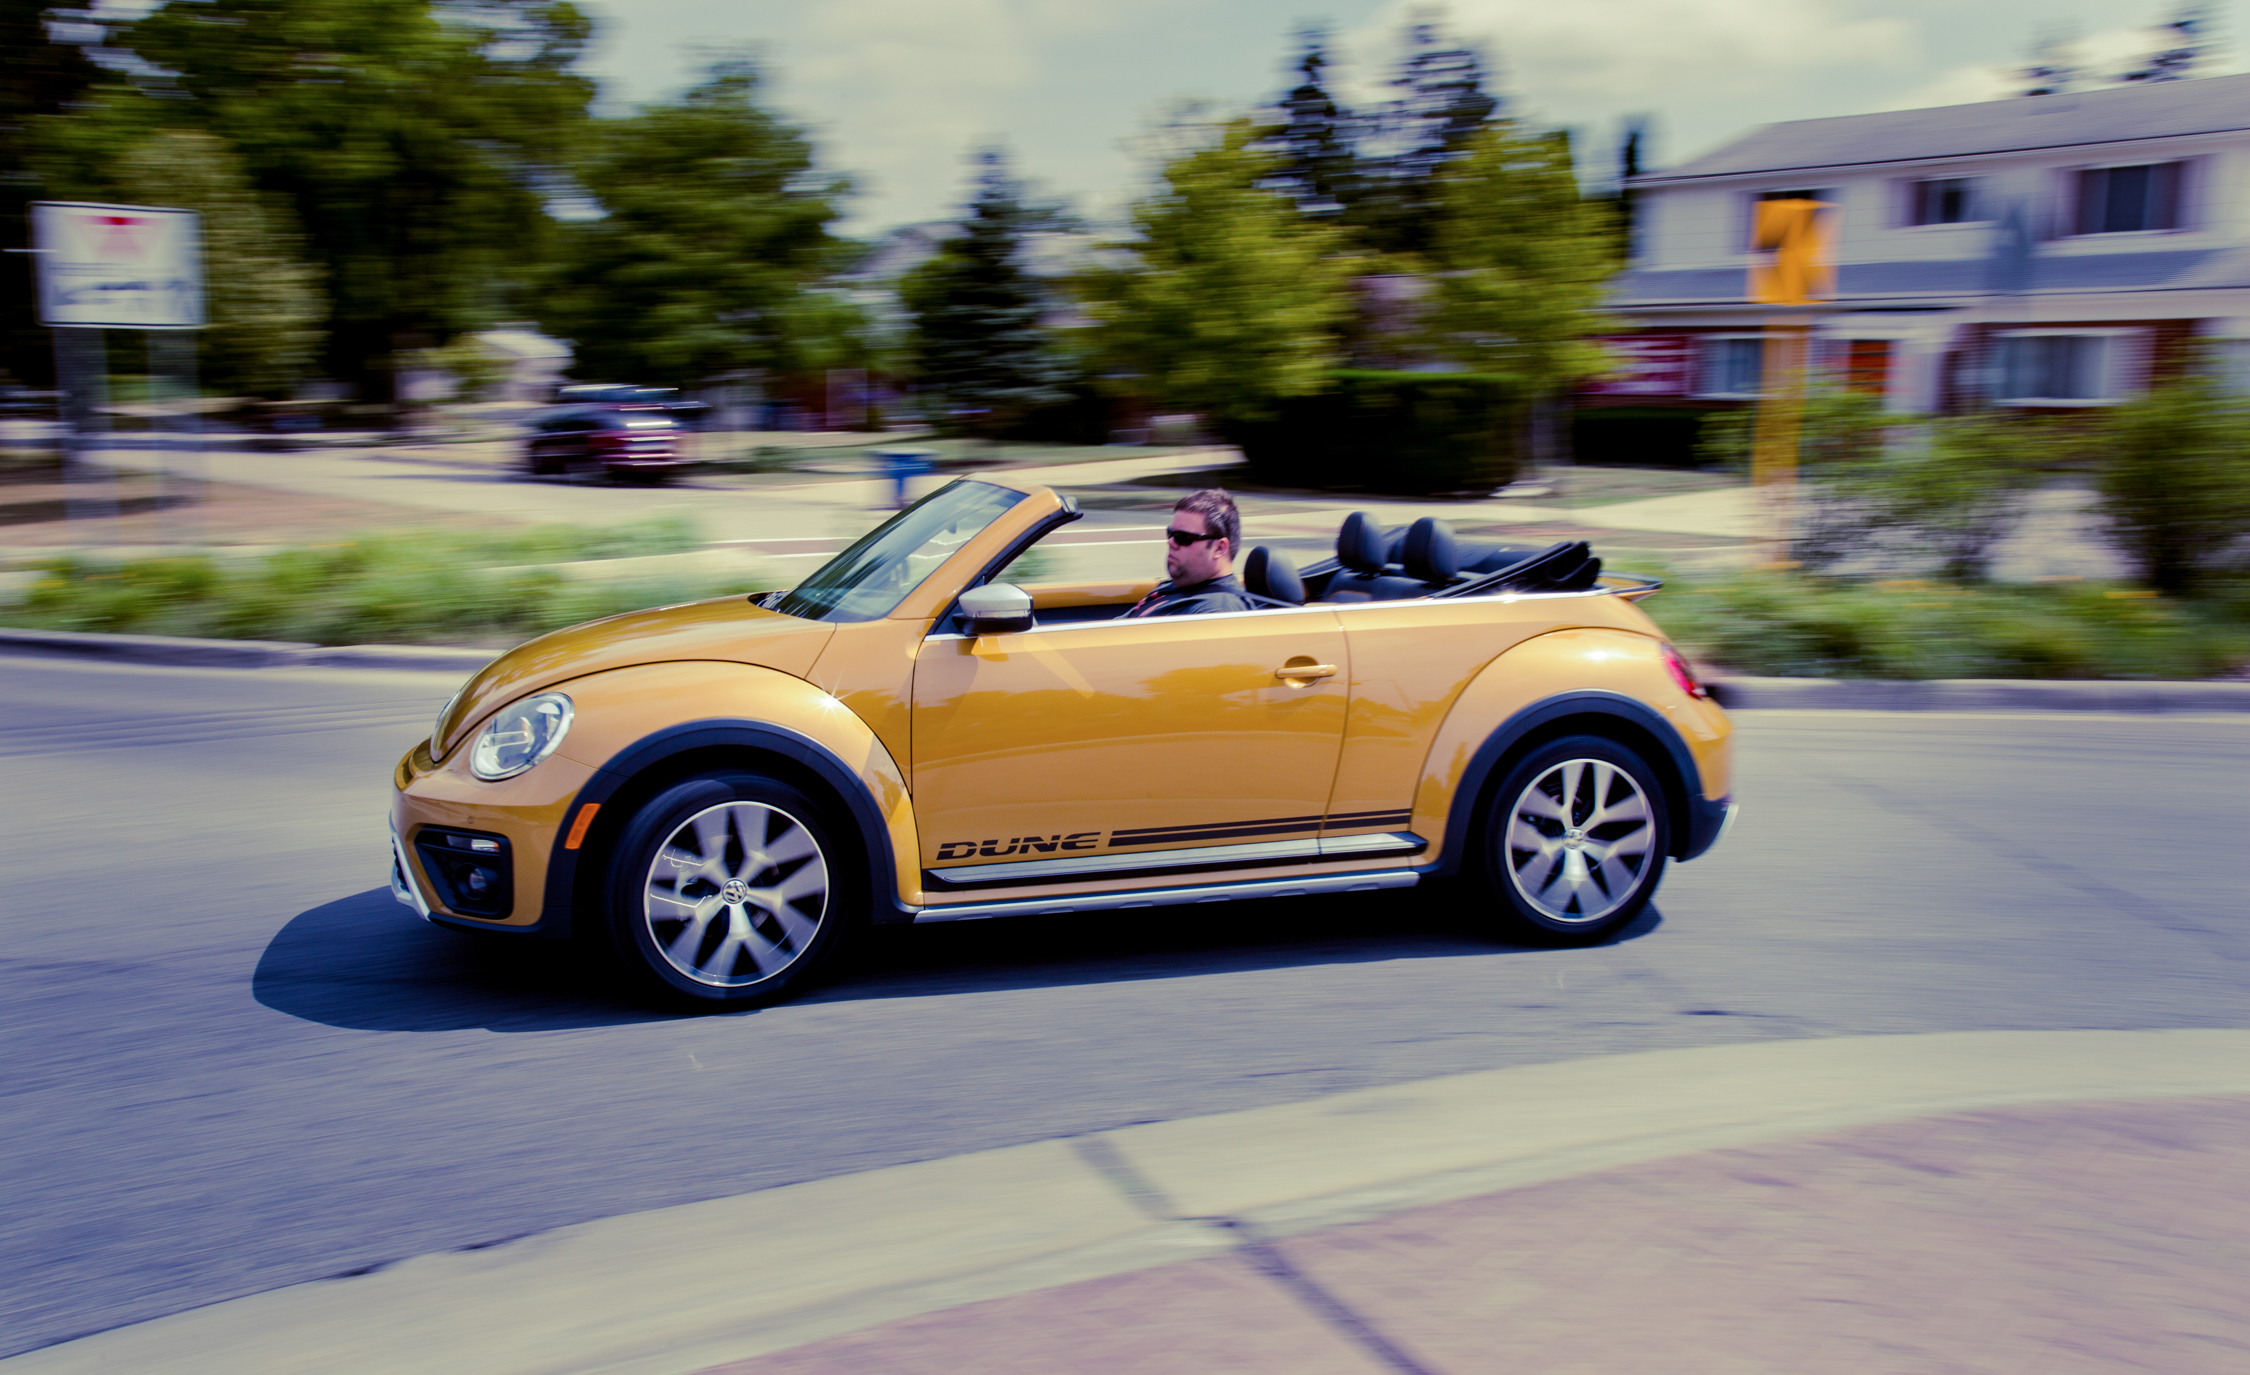 2017 Volkswagen Beetle Dune Convertible Test Drive Roof Open (View 8 of 19)